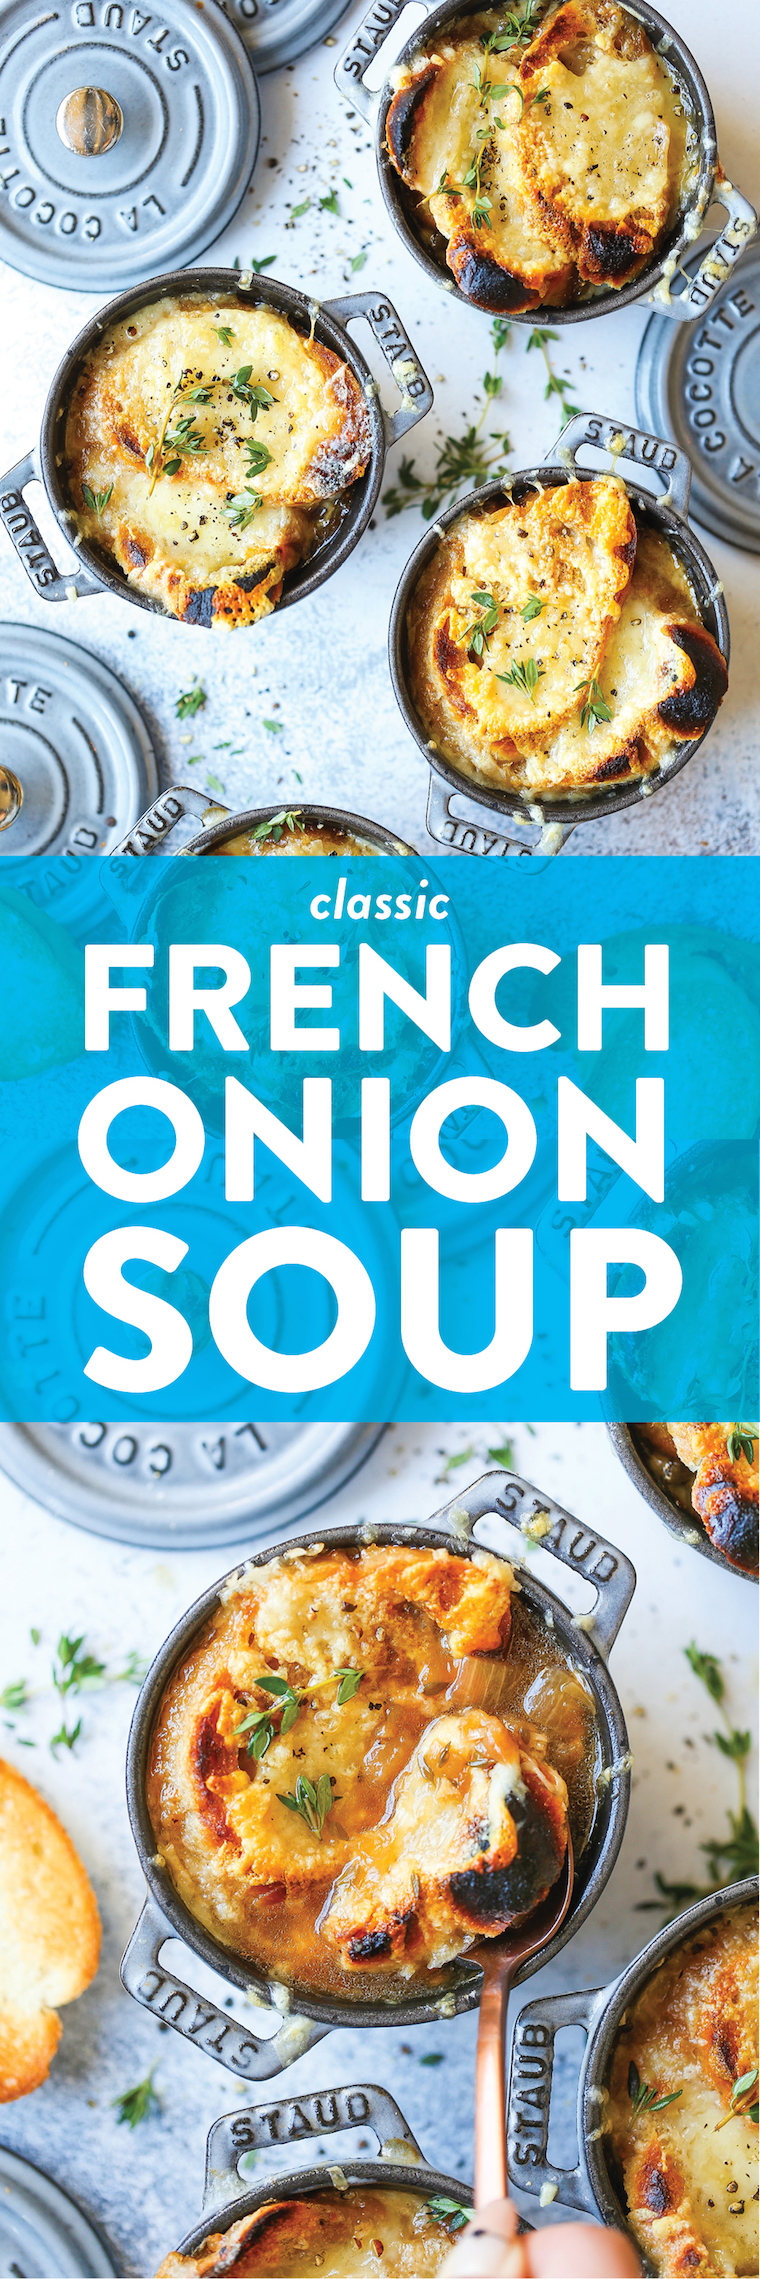 Classic French Onion Soup - Made with perfectly caramelized onions, fresh thyme sprigs, crusty baguette slices and two types of melted cheese right on top!